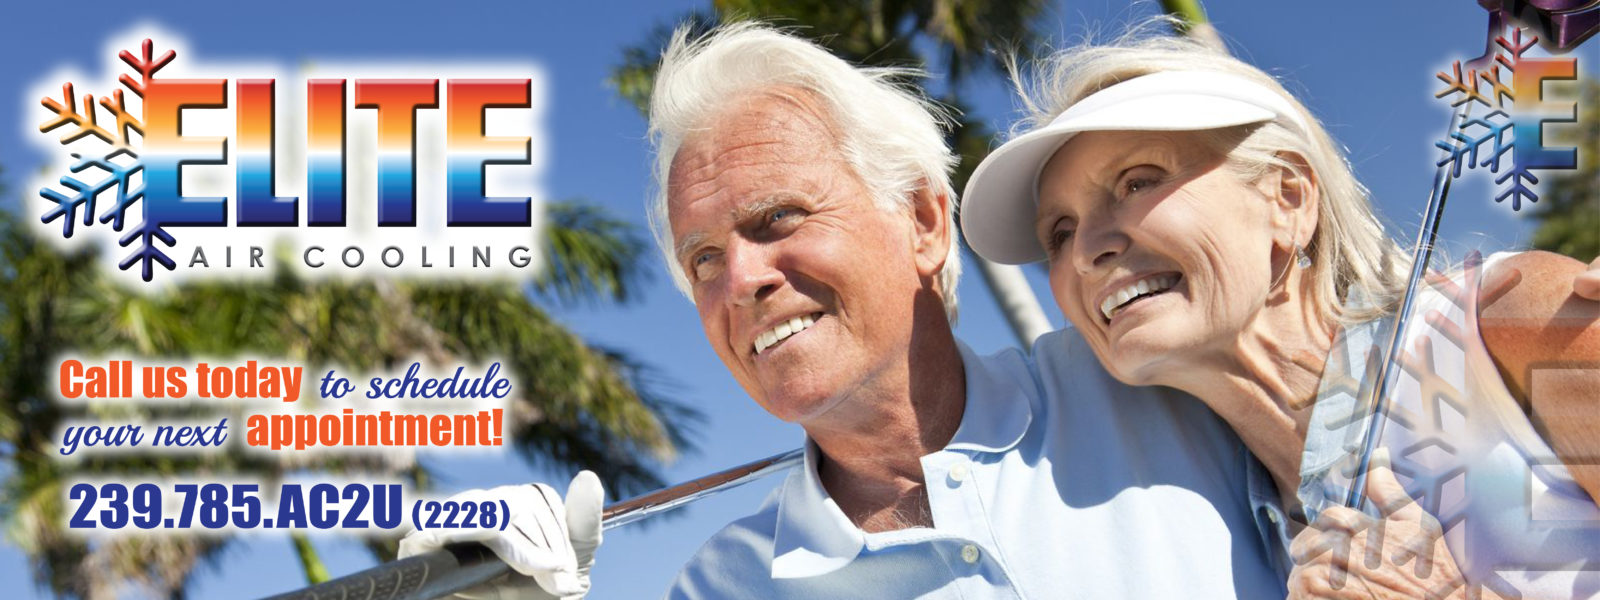 Man and woman happy Elite Air Cooling Ft Myers Fl 33913 239-785-2228